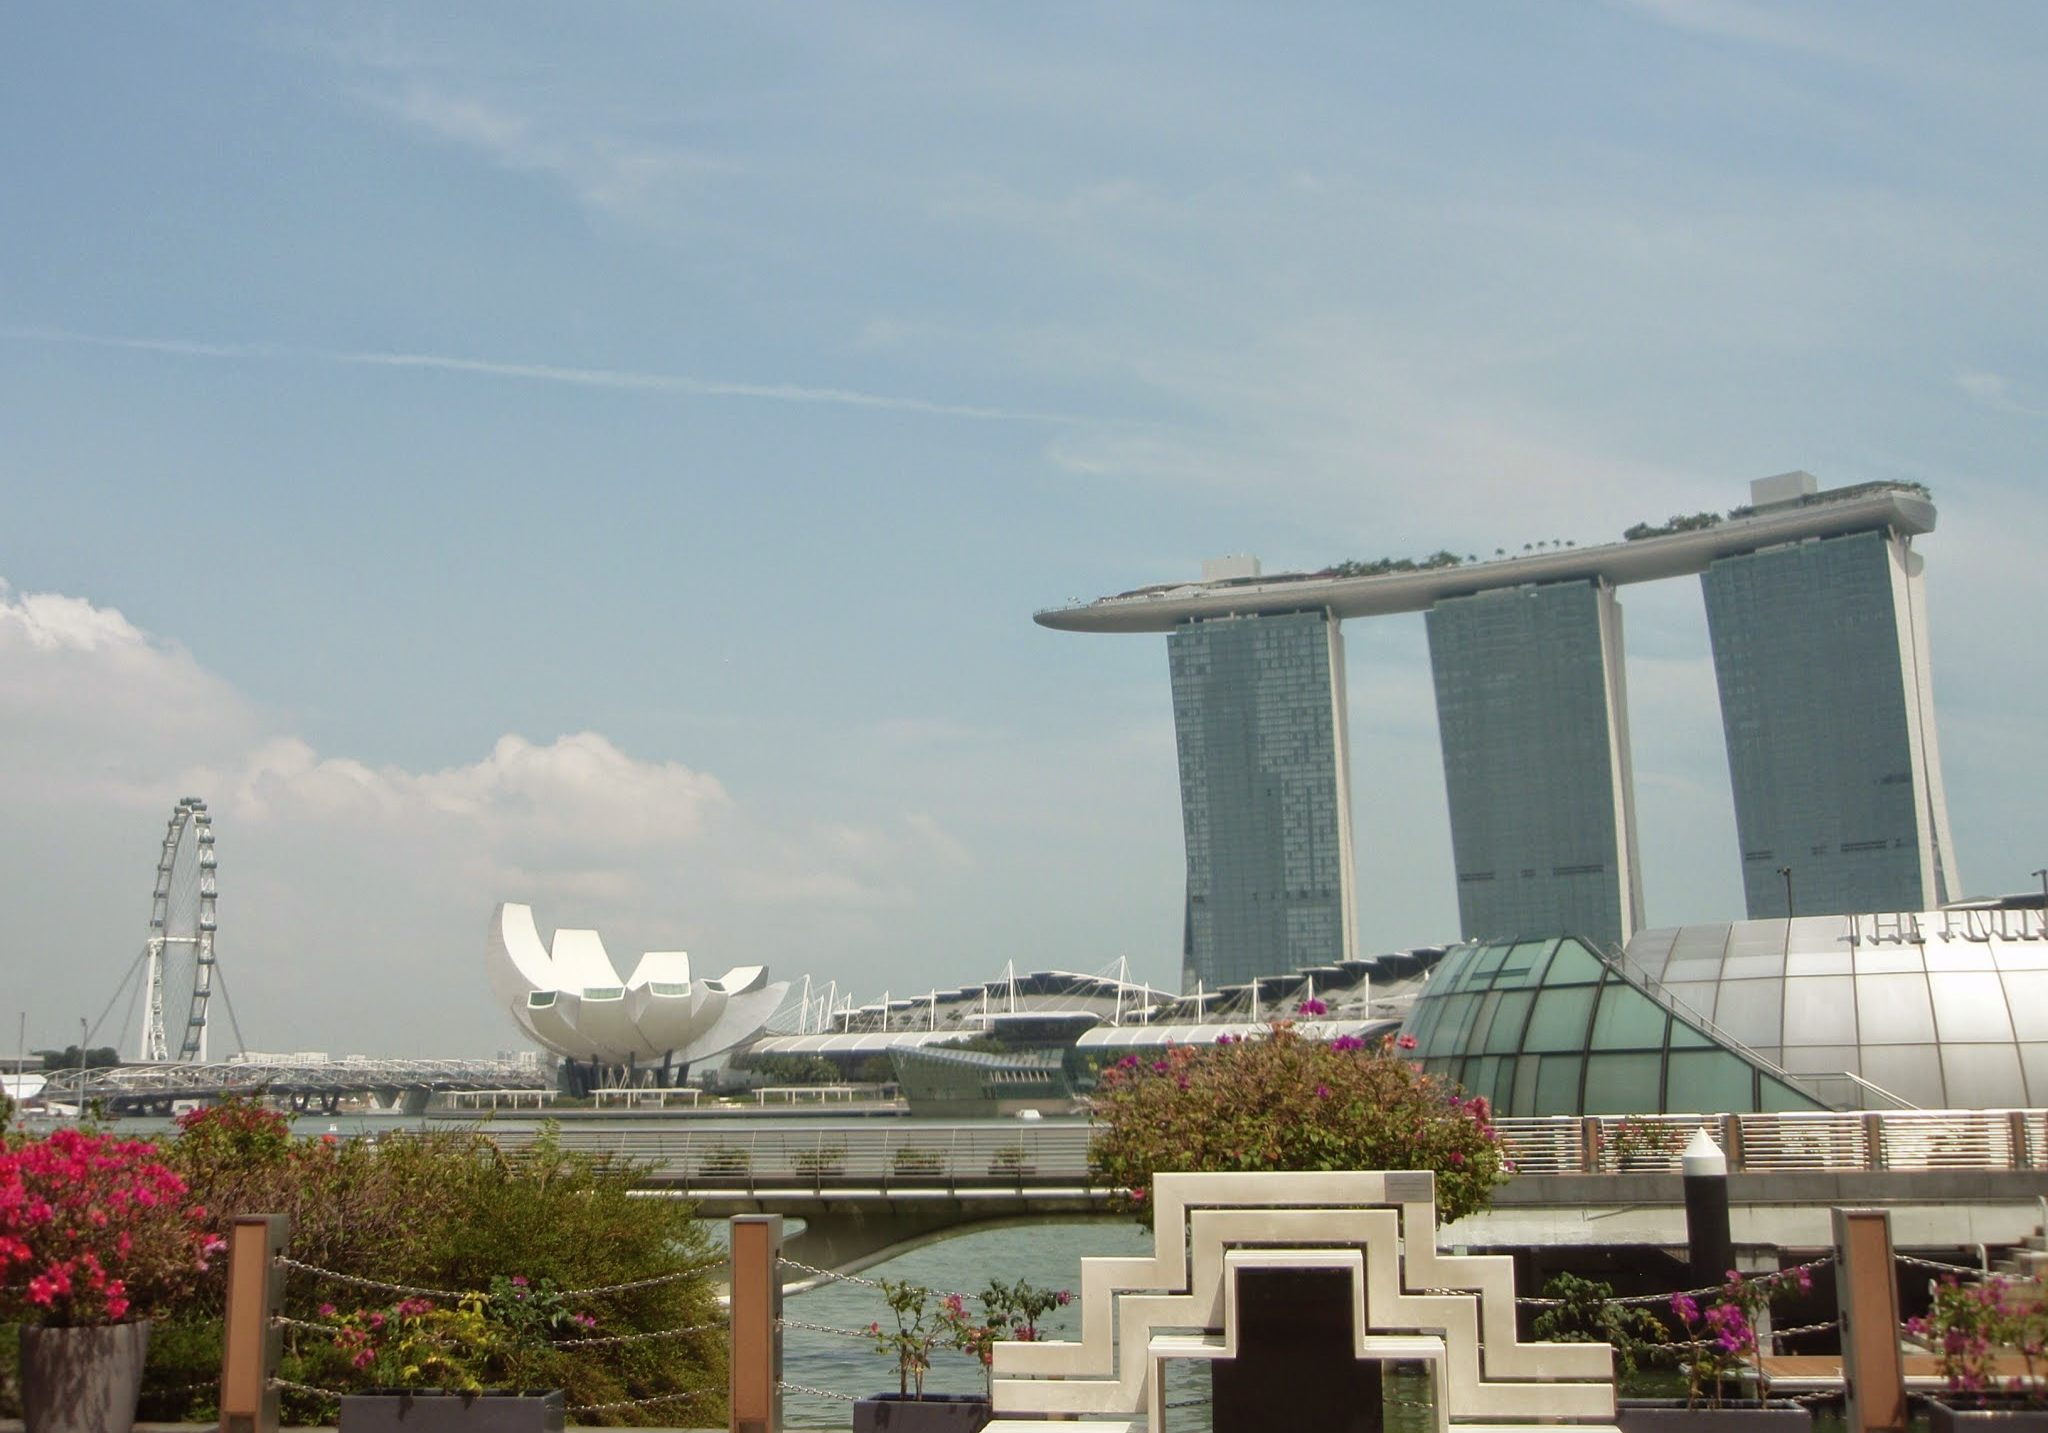 Marina Bay, singapore, marina bay sands, marina bay sands hotel, art and science museum, singapore flyer, travelling, travels, backpacking,